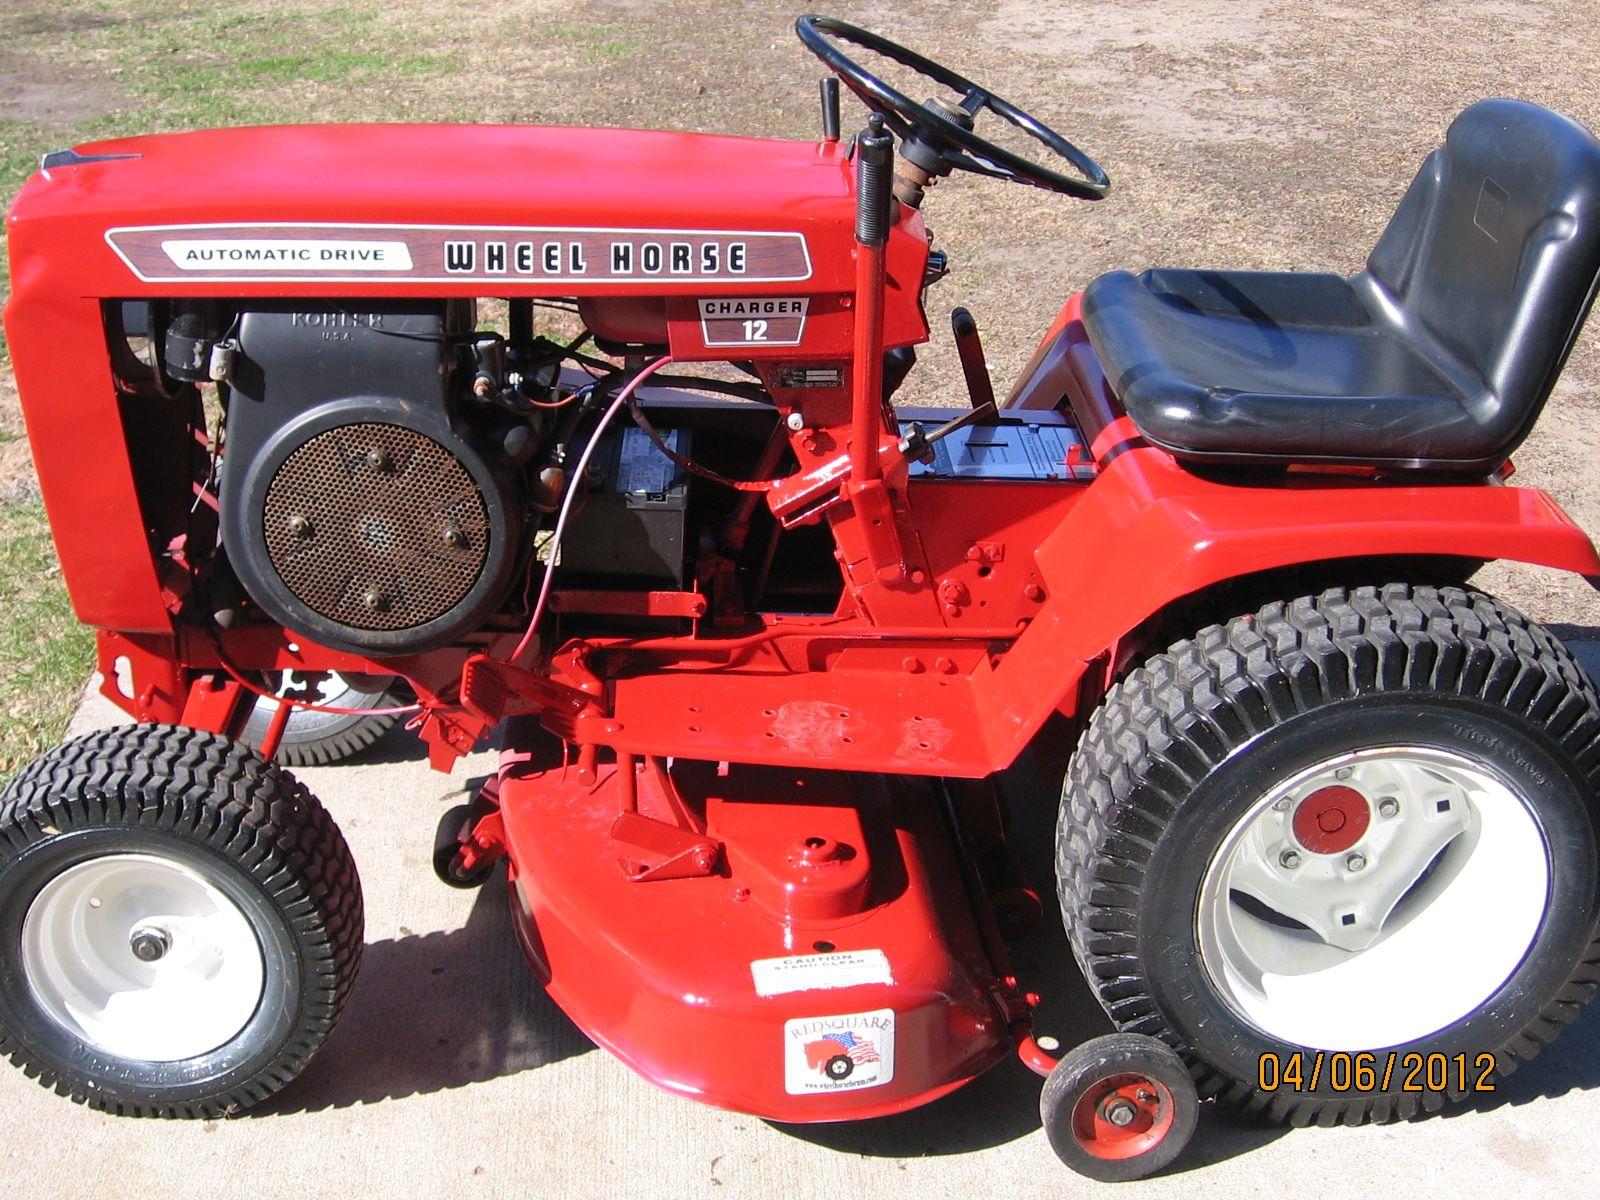 Wheel Horse Tractor Engines : Wheel horse lawn tractor parts bing images